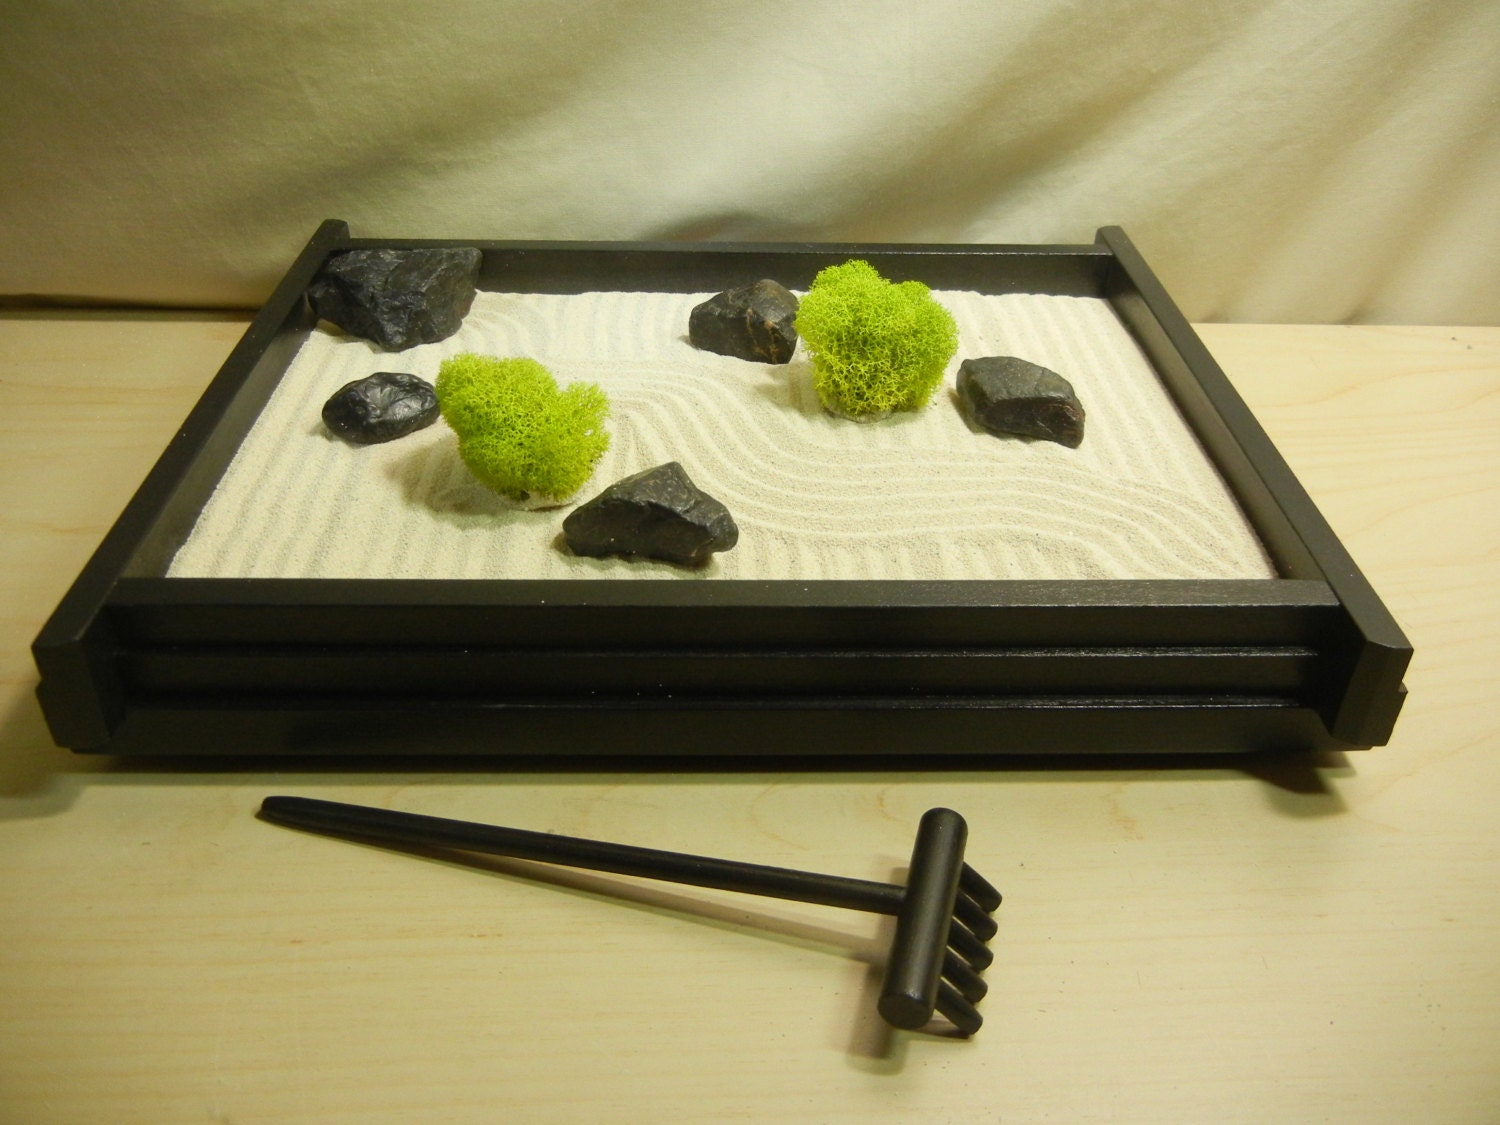 M01 medium desk or table top zen garden diy kit for Table zen garden